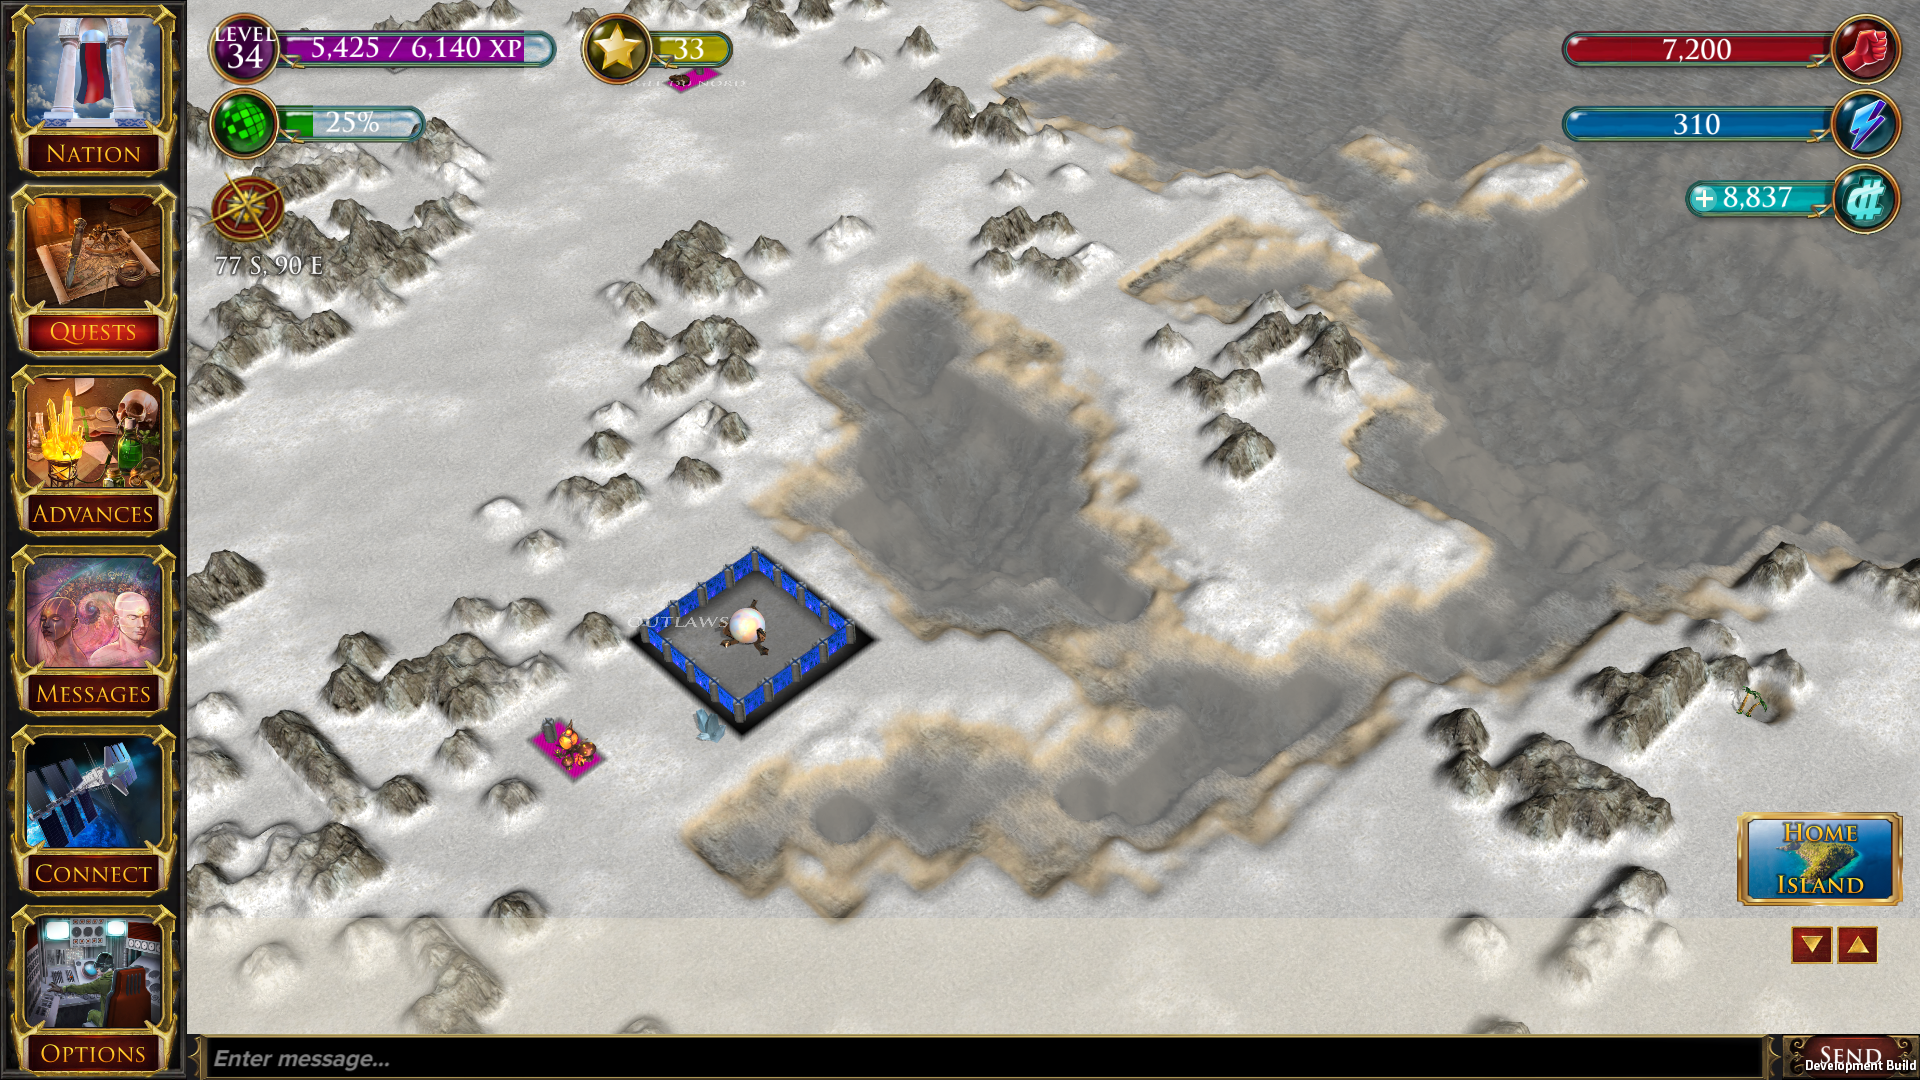 Early development screenshot from the new War of Conquest